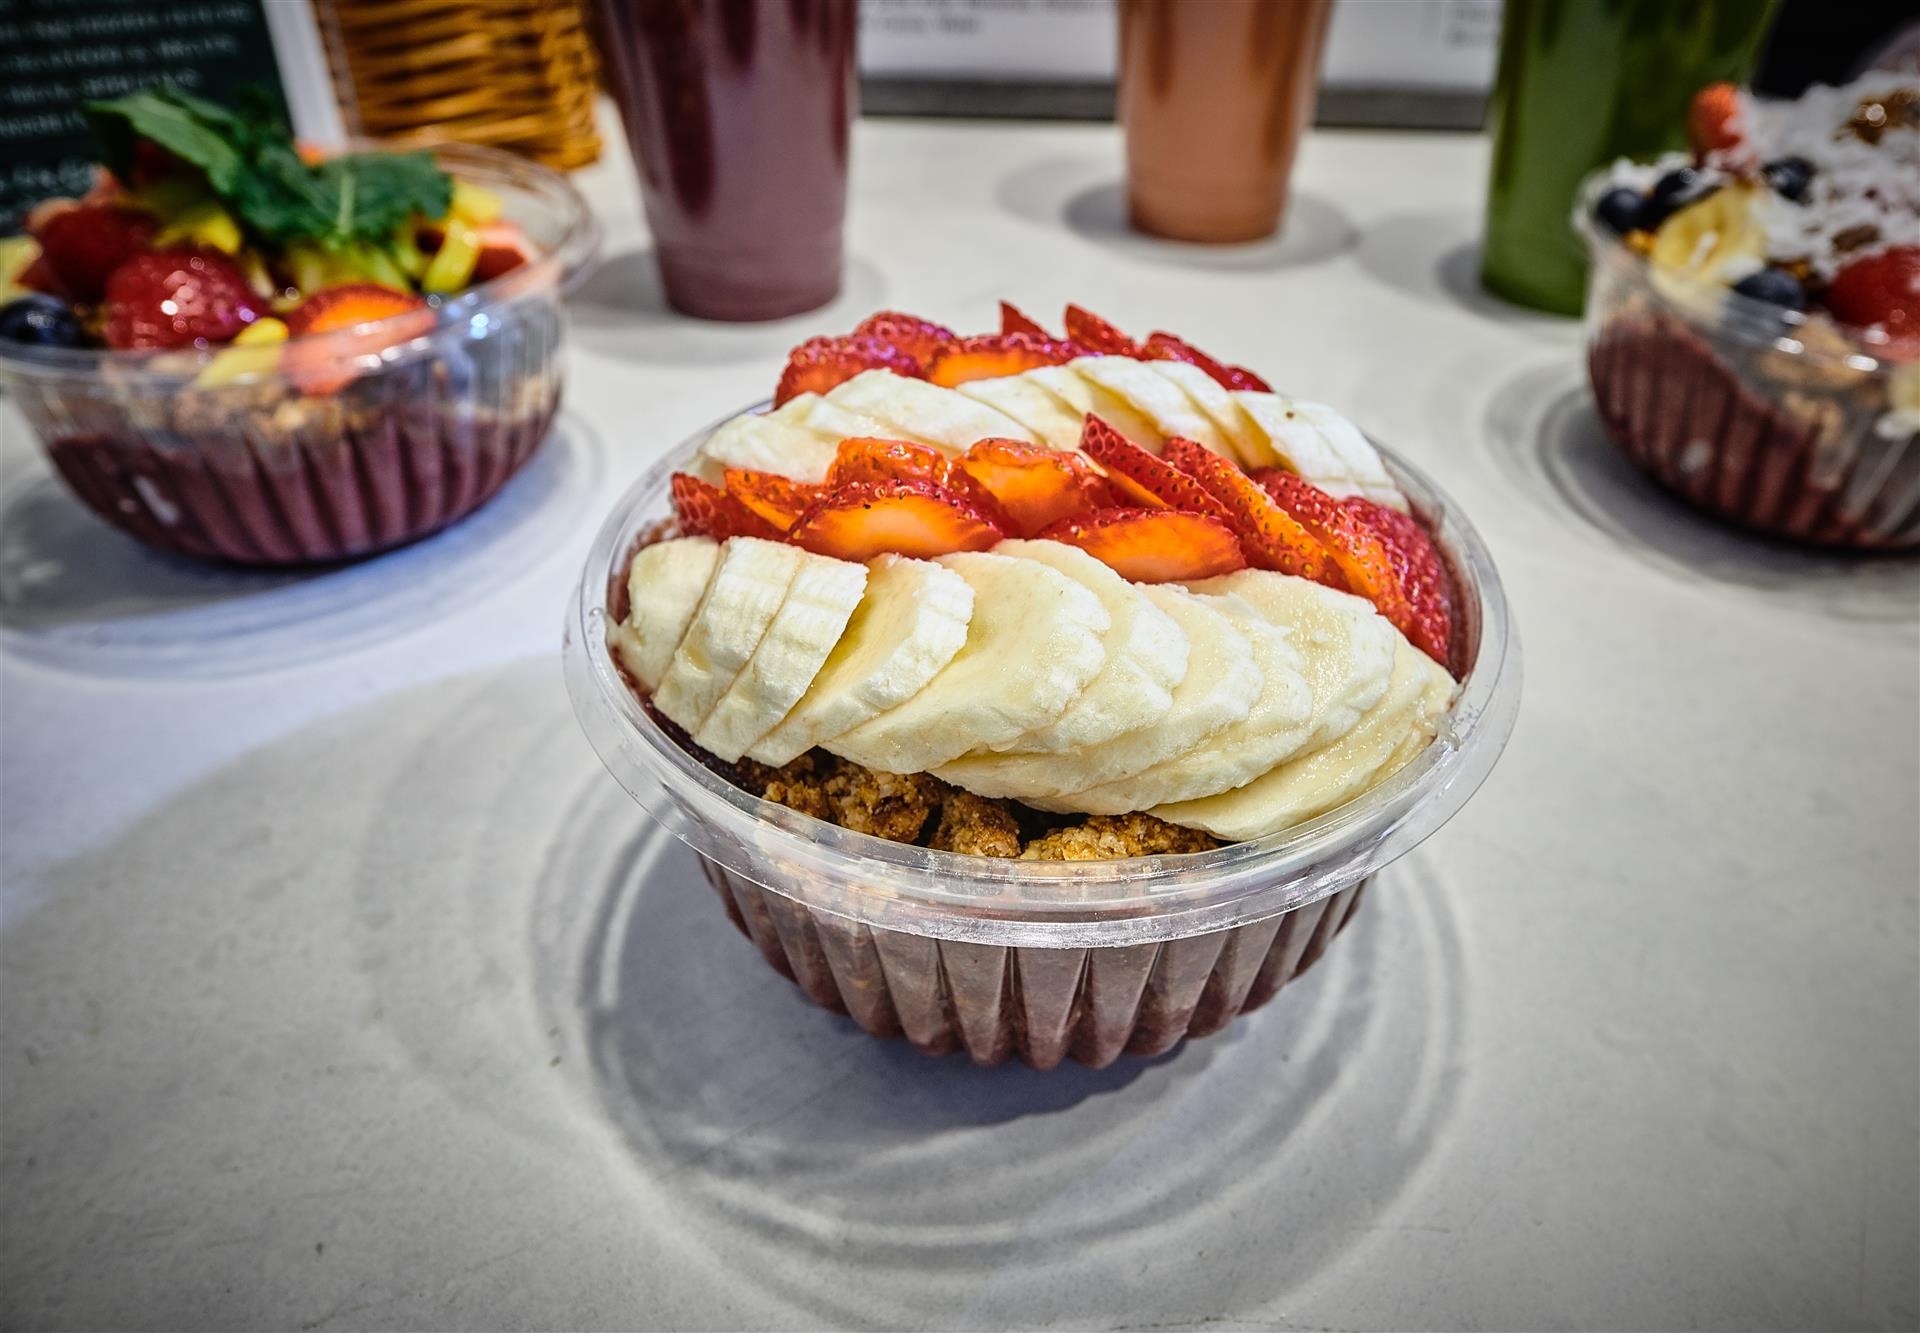 acai bowl topped with strawberries and bananas